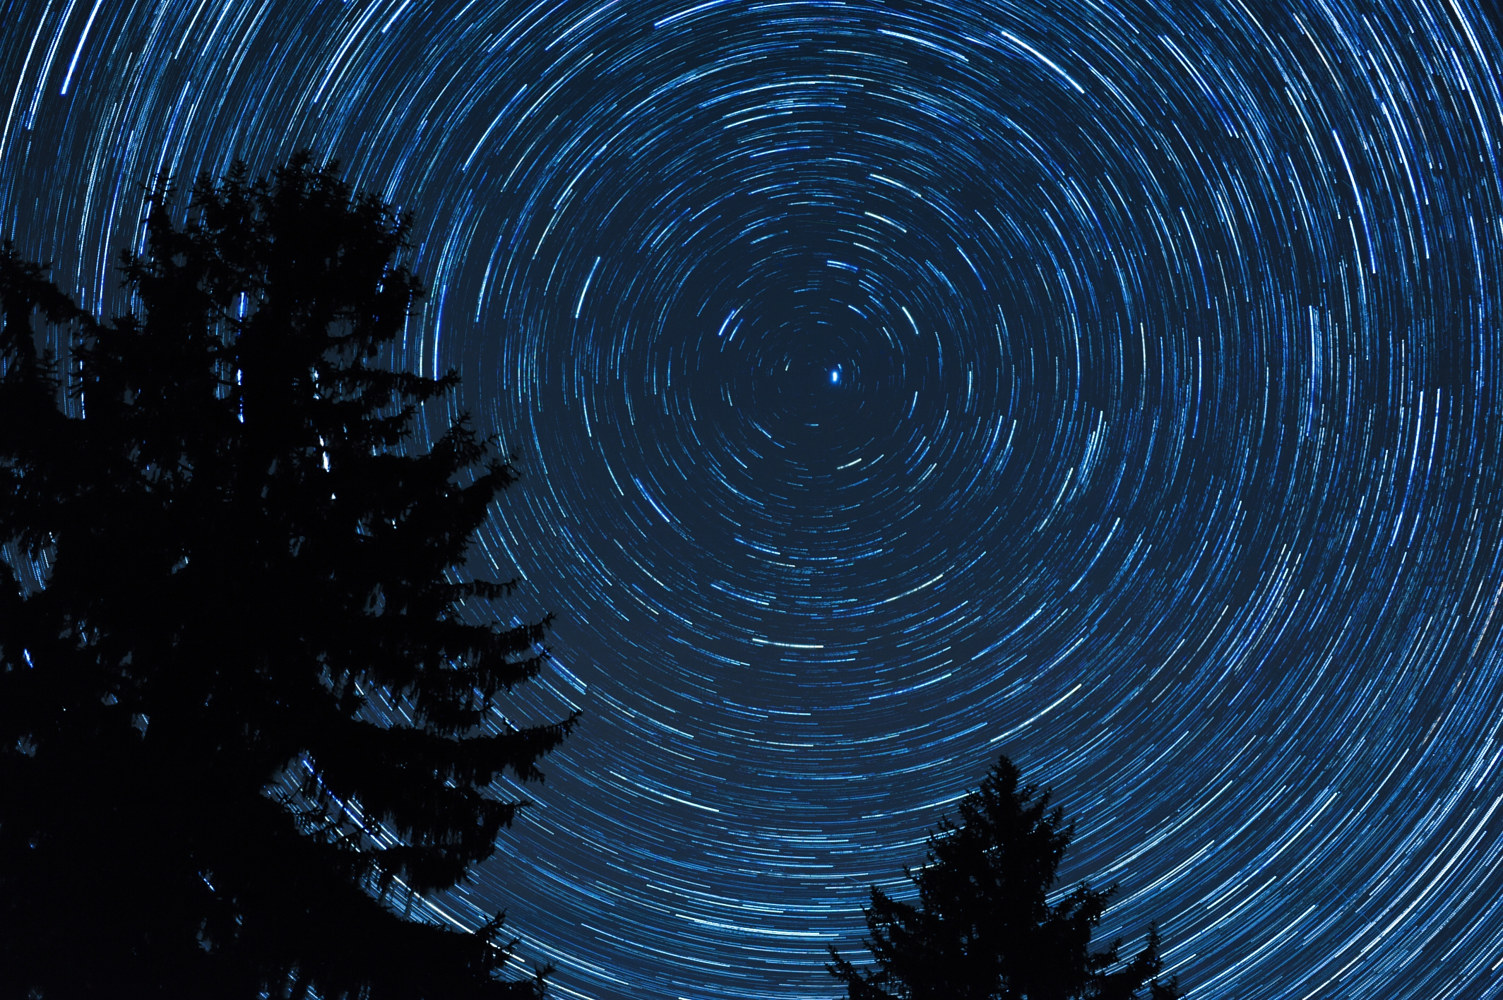 Star trail 2 by Dawn Reilly